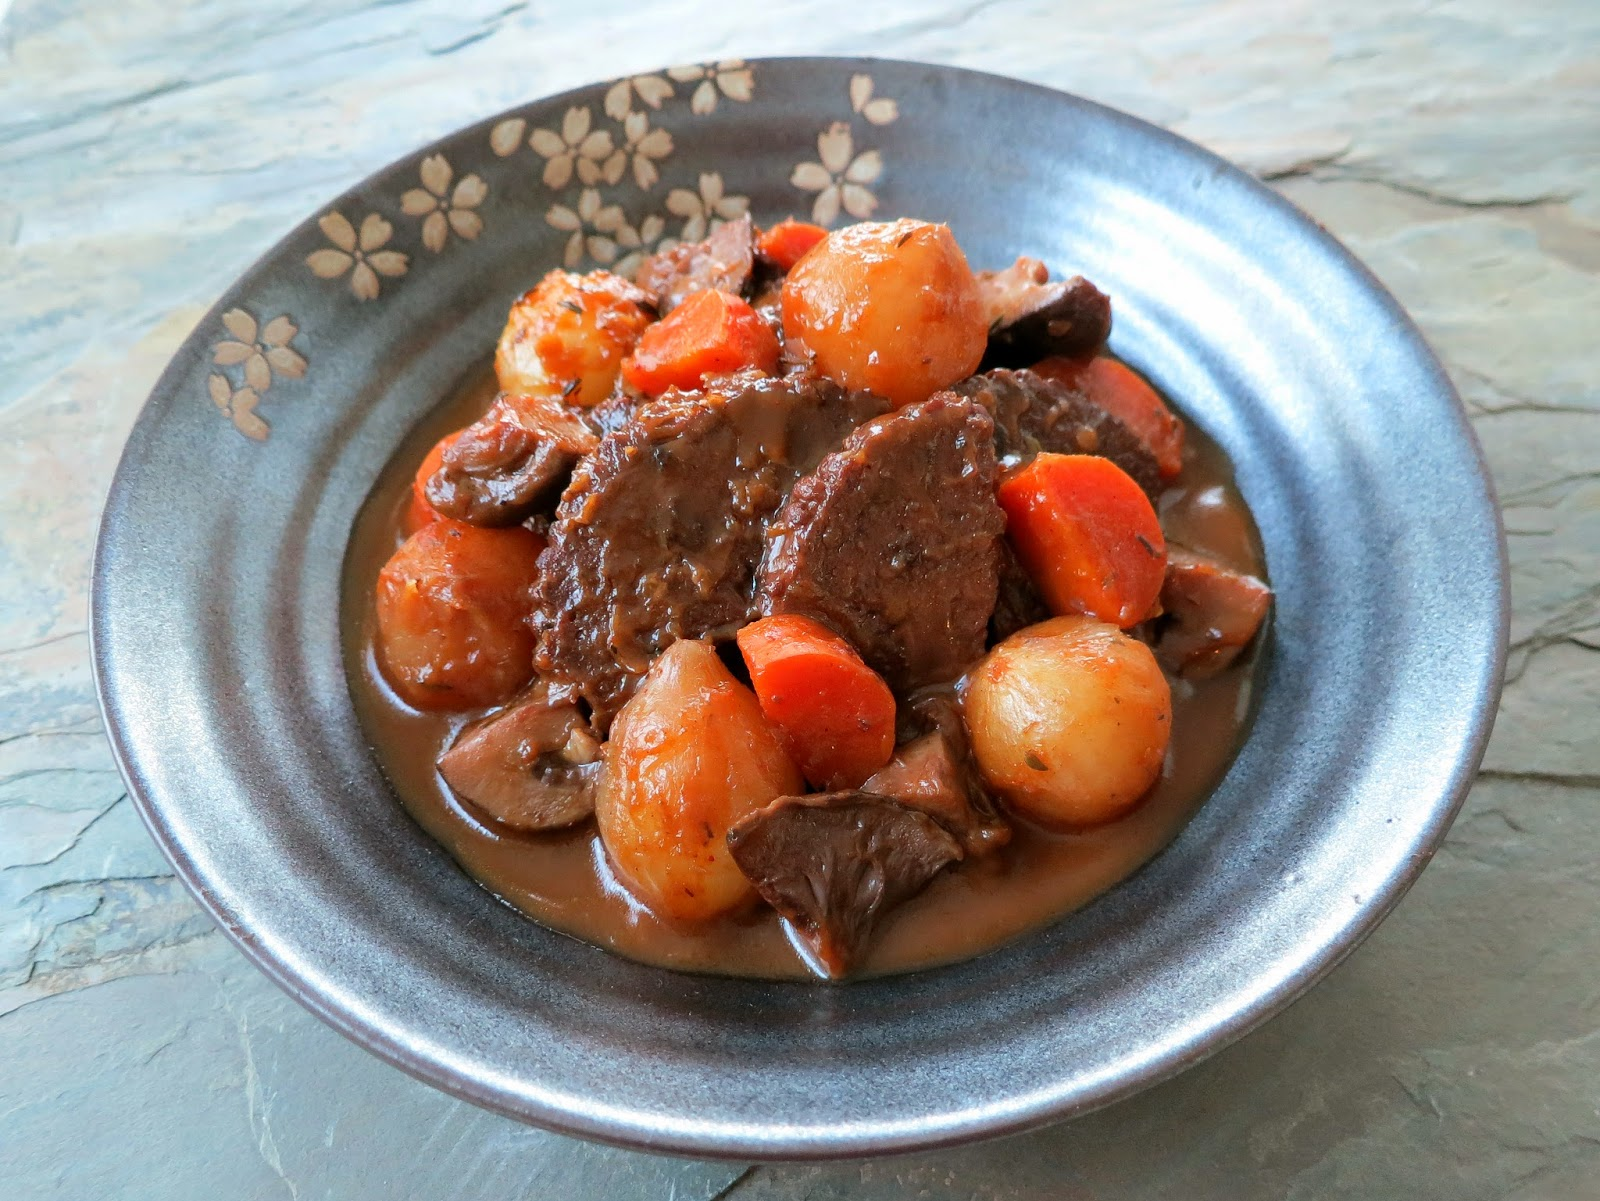 Recipe: Wild Mushroom Bourguignon (Vegan/Vegetarian Beef Bourguignon)